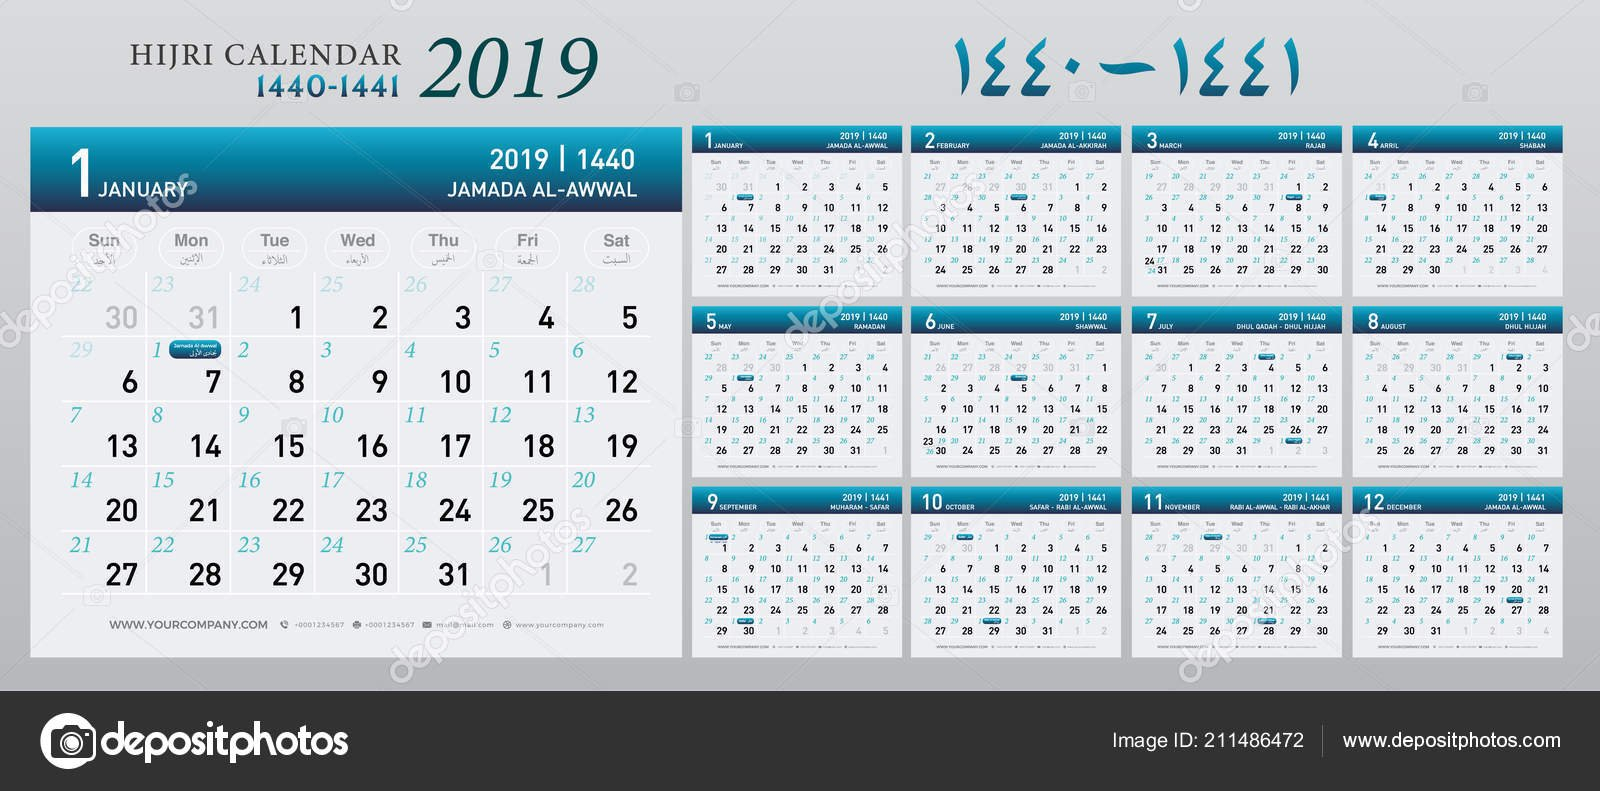 Calendar 2019 Hijri 1440 1441 Islamic Template Simple Minimal Wall 2019 Calendar 1440